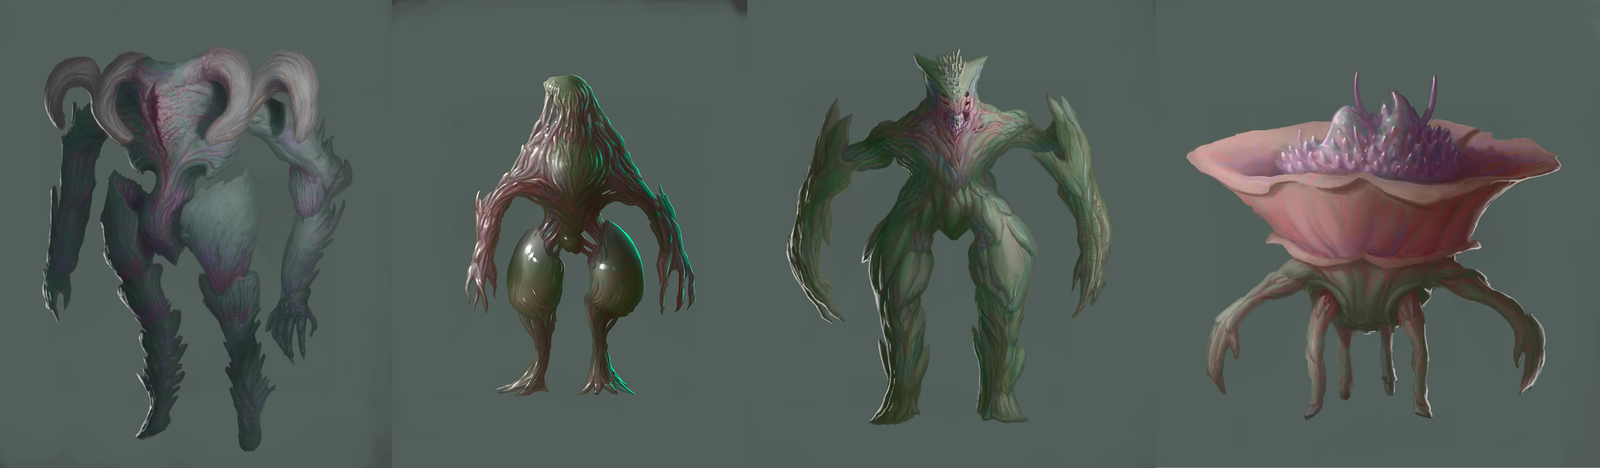 Monster Concepts 2 by JeanRoux